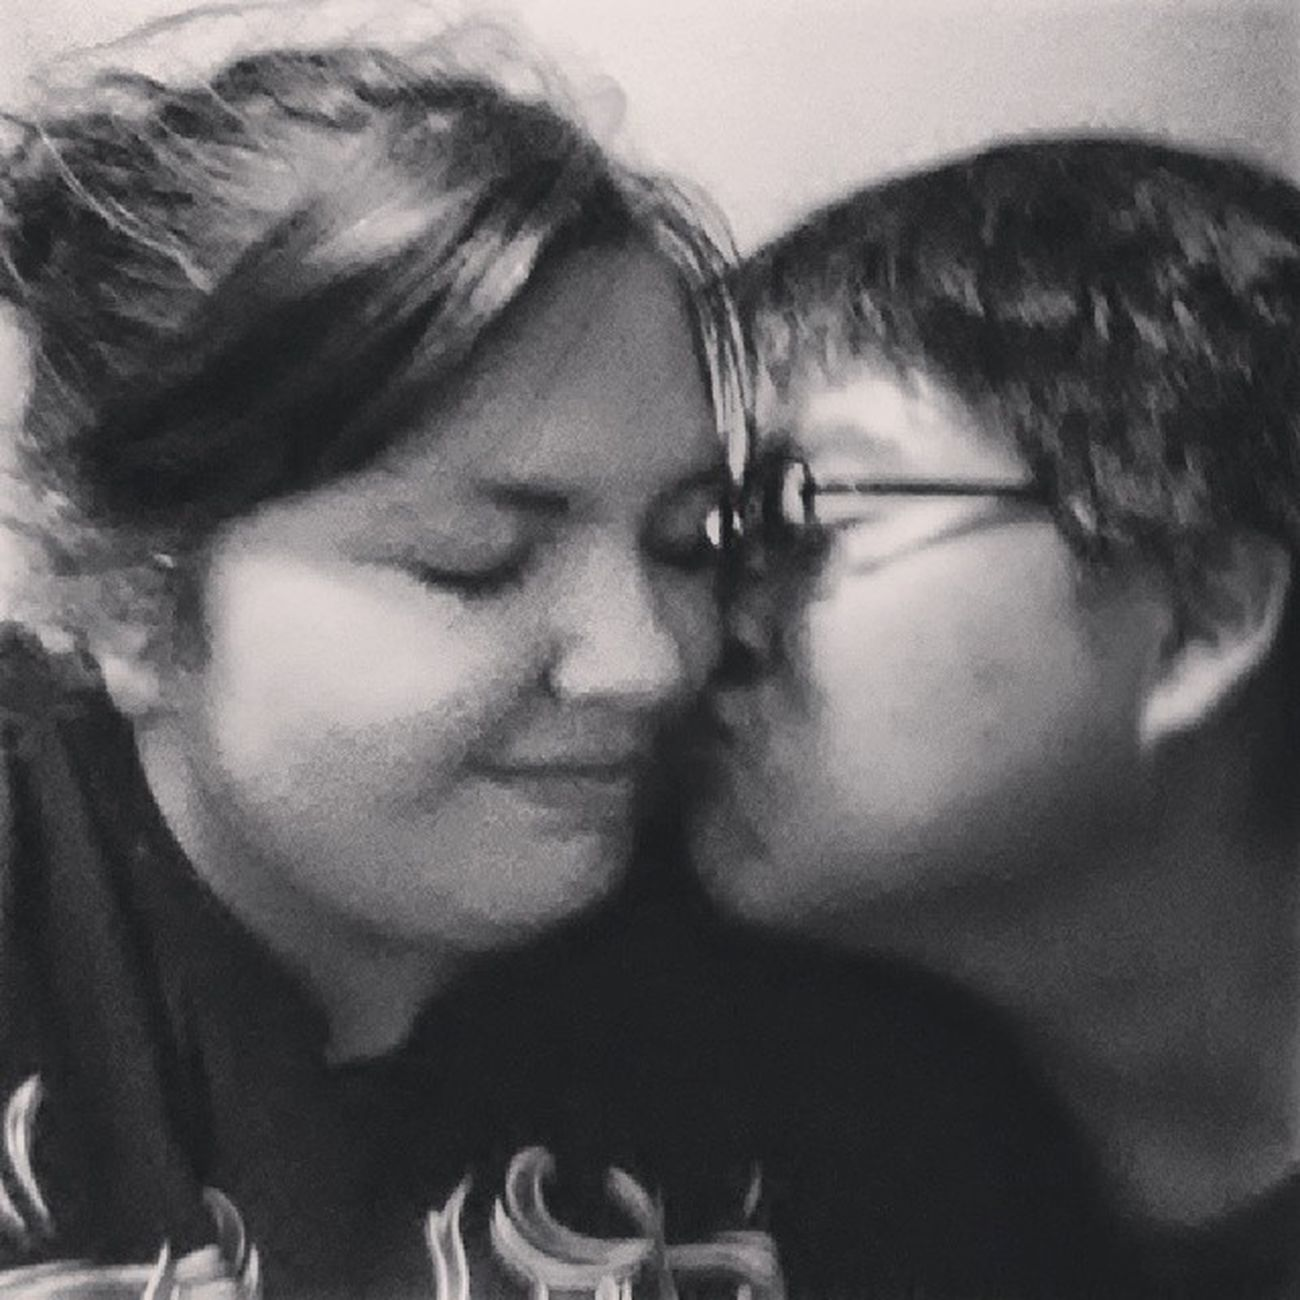 My baby giving me a kiss cuz I'm a sleepy grouchy butt ! XD Sleepyhead Sleepy Grouchy Grouchybutt whitegirl bbw sagittarius pisces interraciallove interracialcouple interracial navajo native nativeamerican cheyenne apache sioux grouchykisses mynativeluv kiss kisses